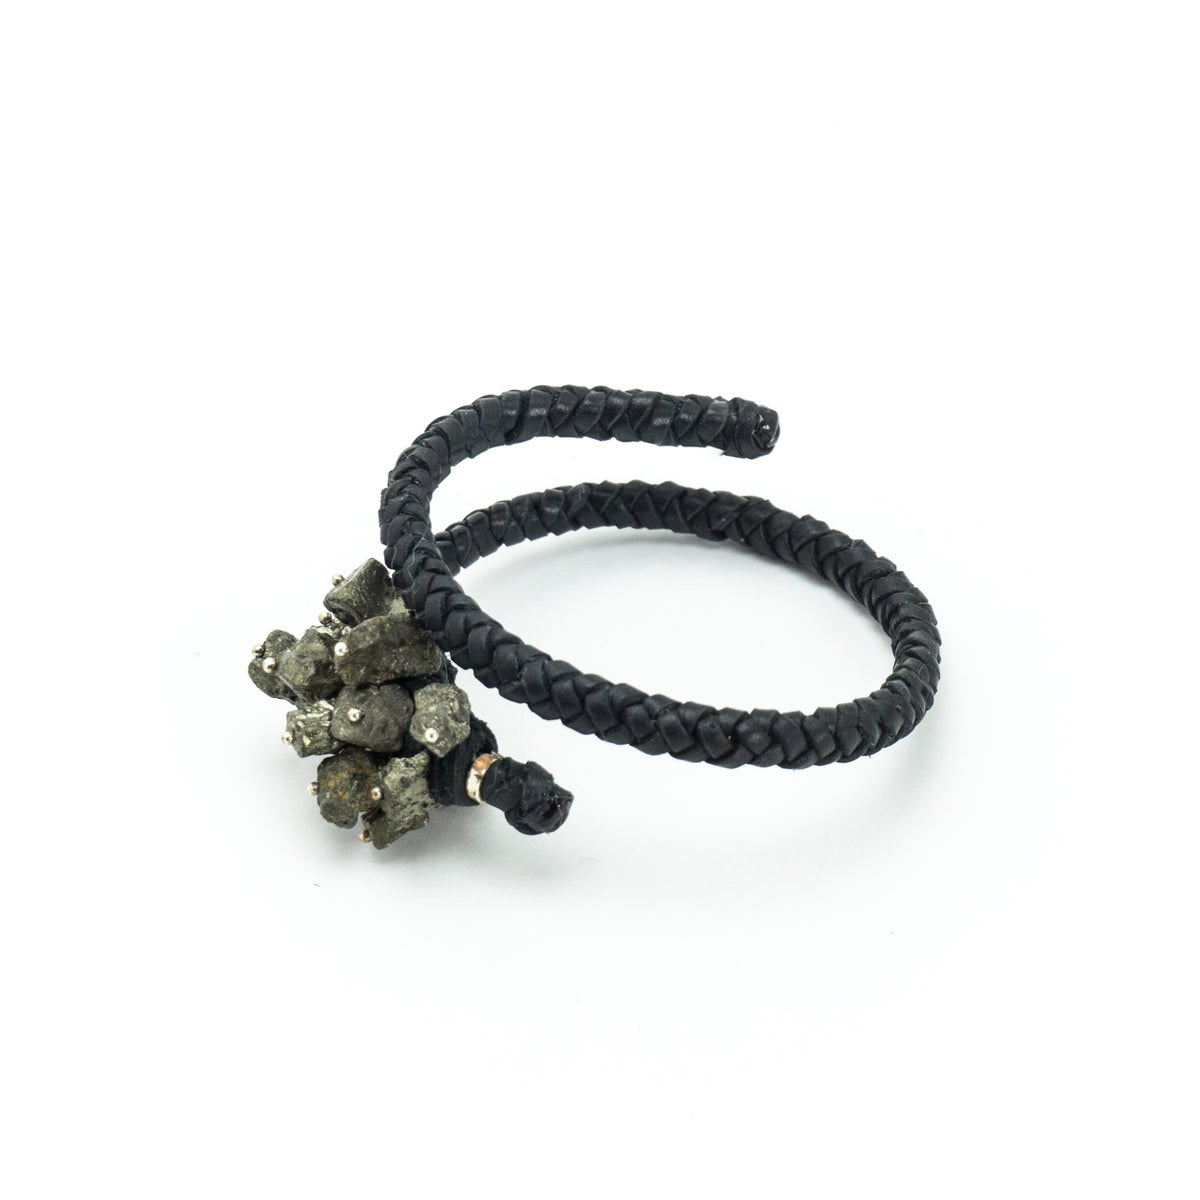 Image of Pyrite Braided Leather Cuff